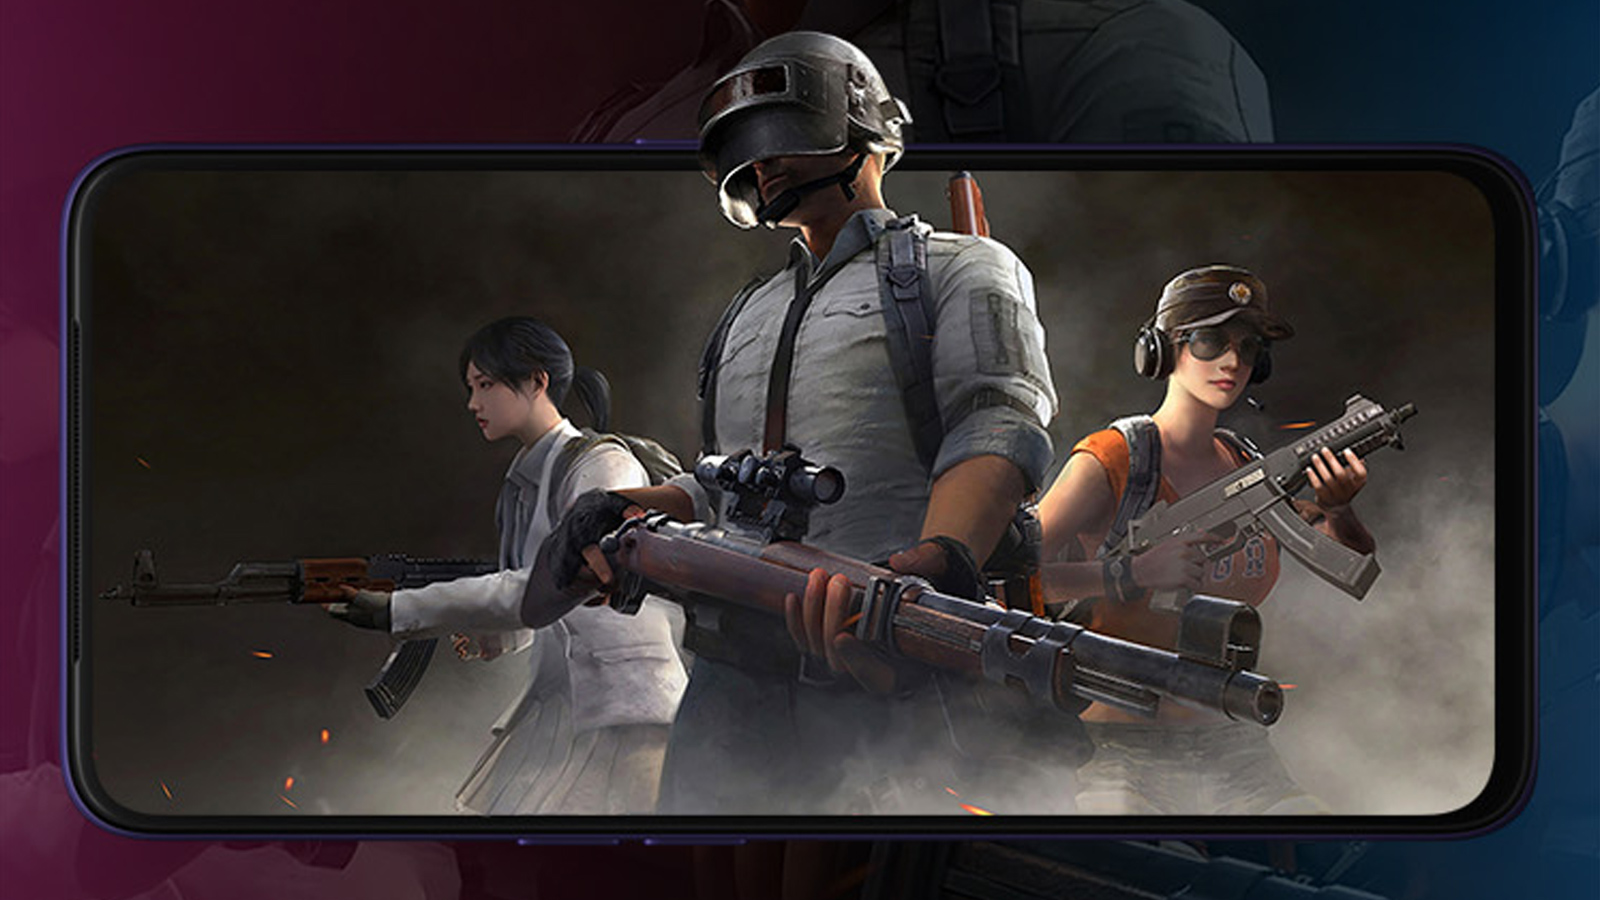 PUBG causing bad influence on youth; enforced to be banned in several countries